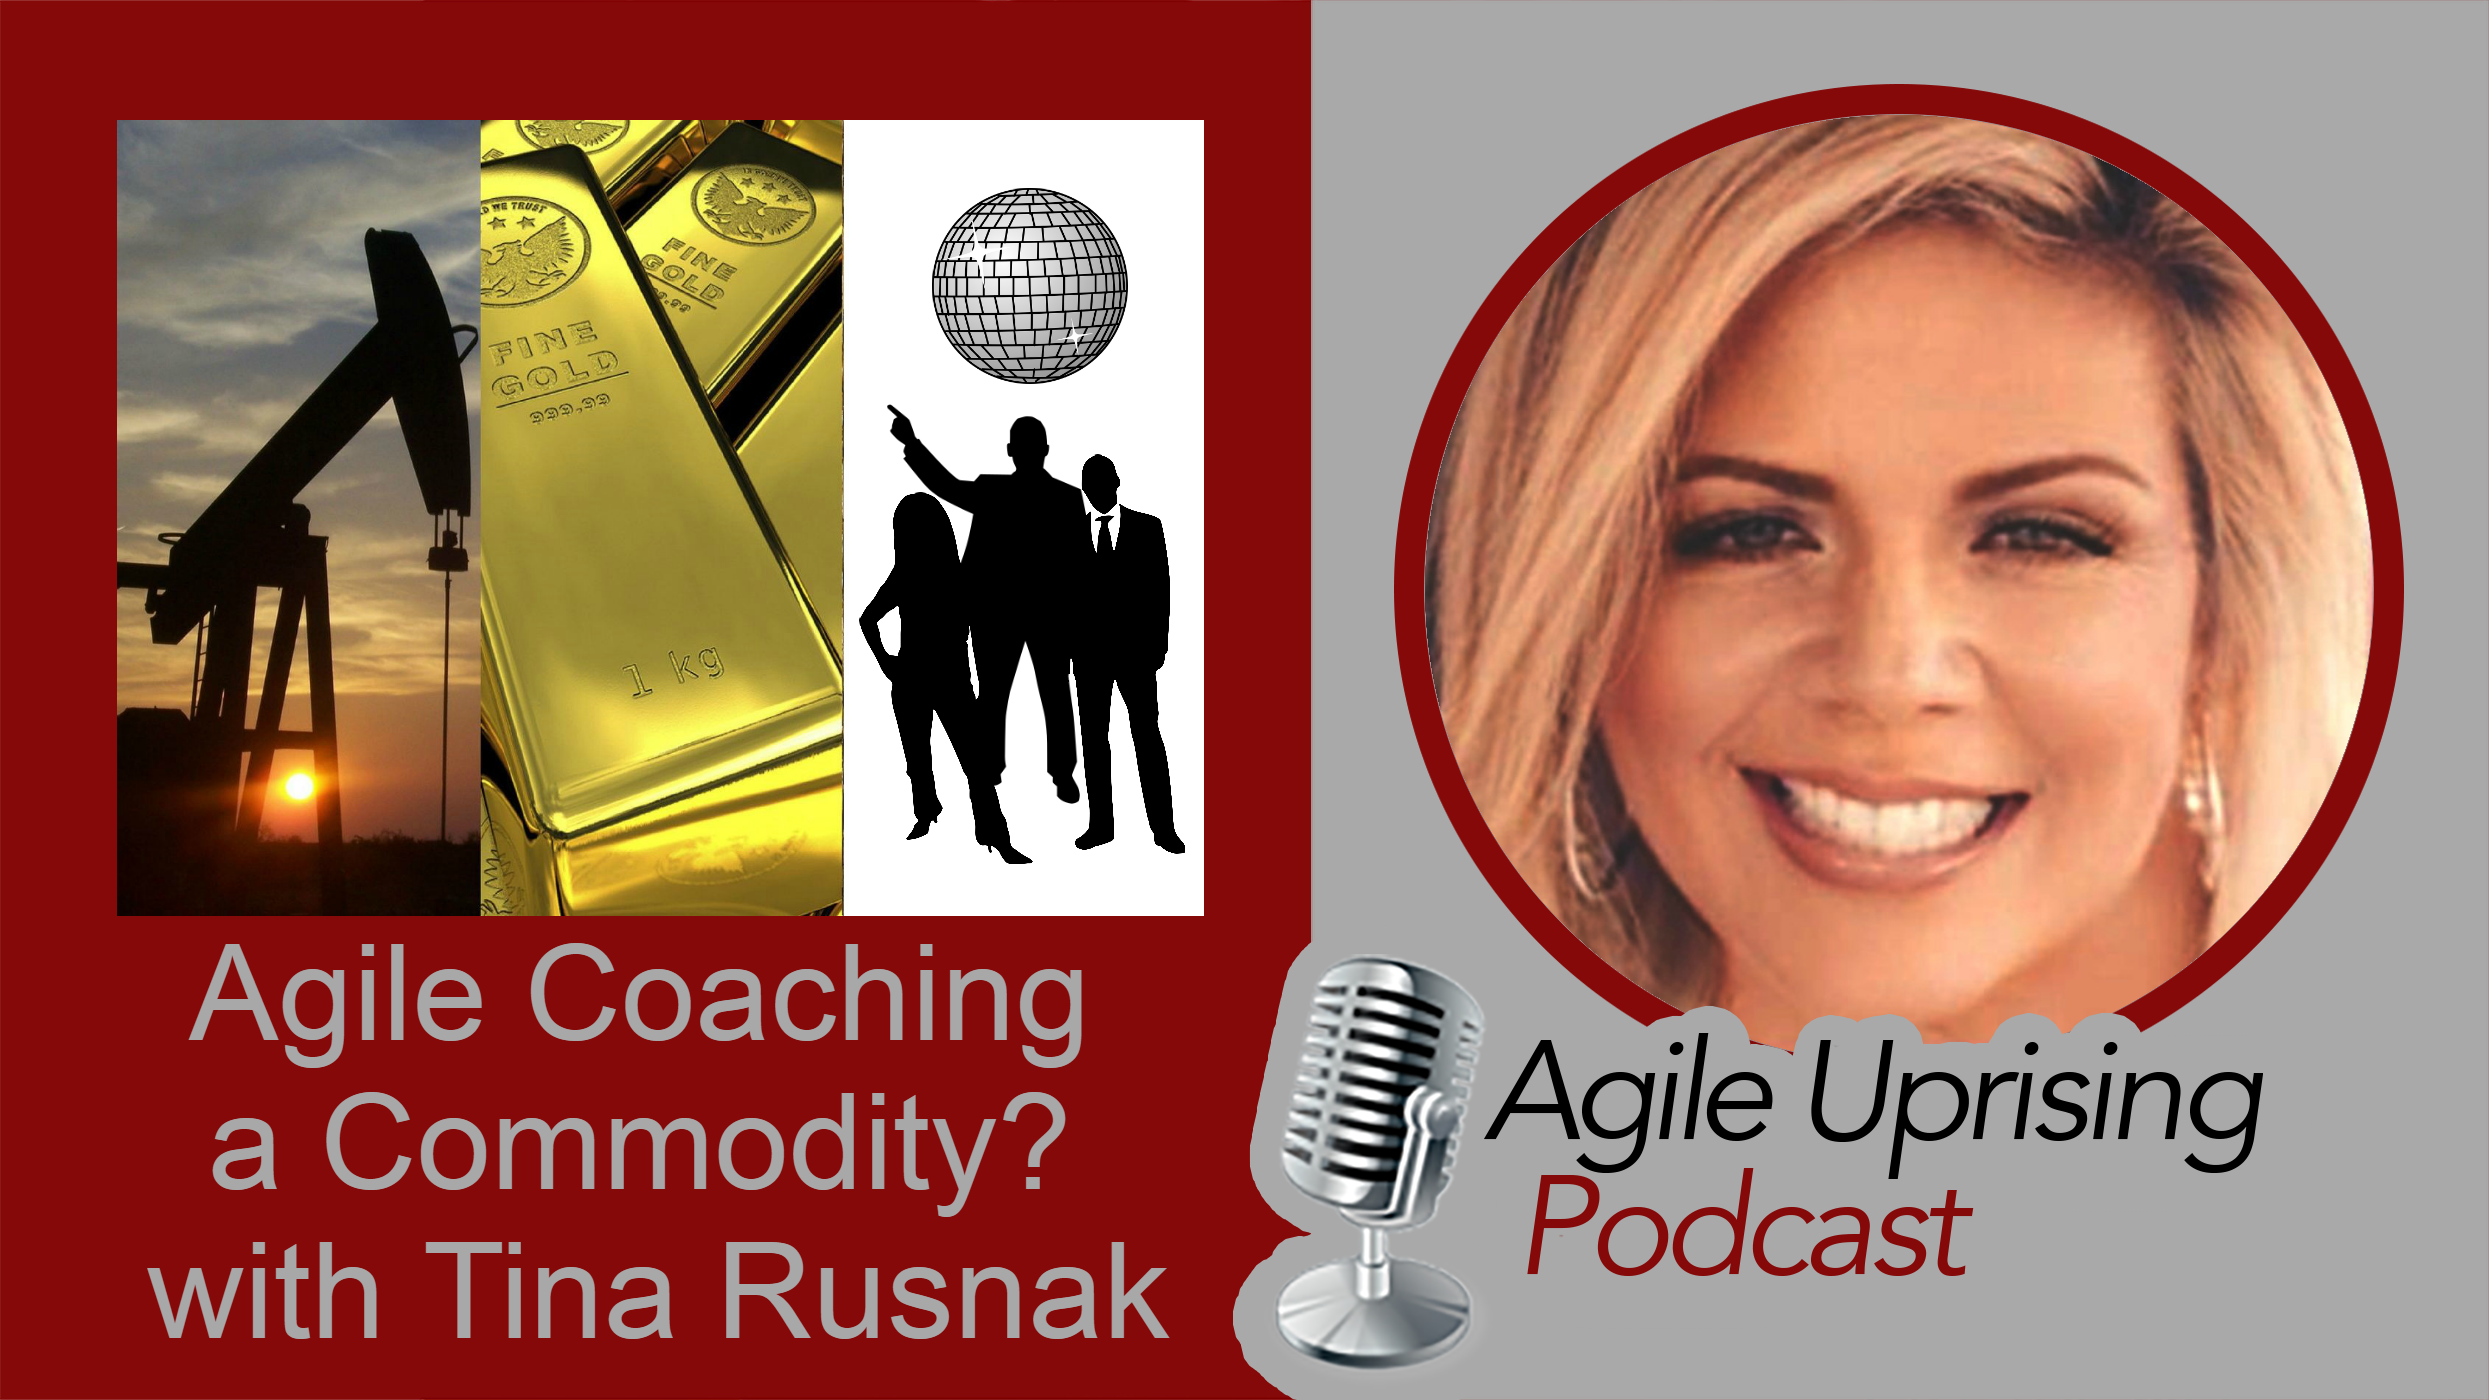 Agile Coaching a Commodity? with Tina Rusnak